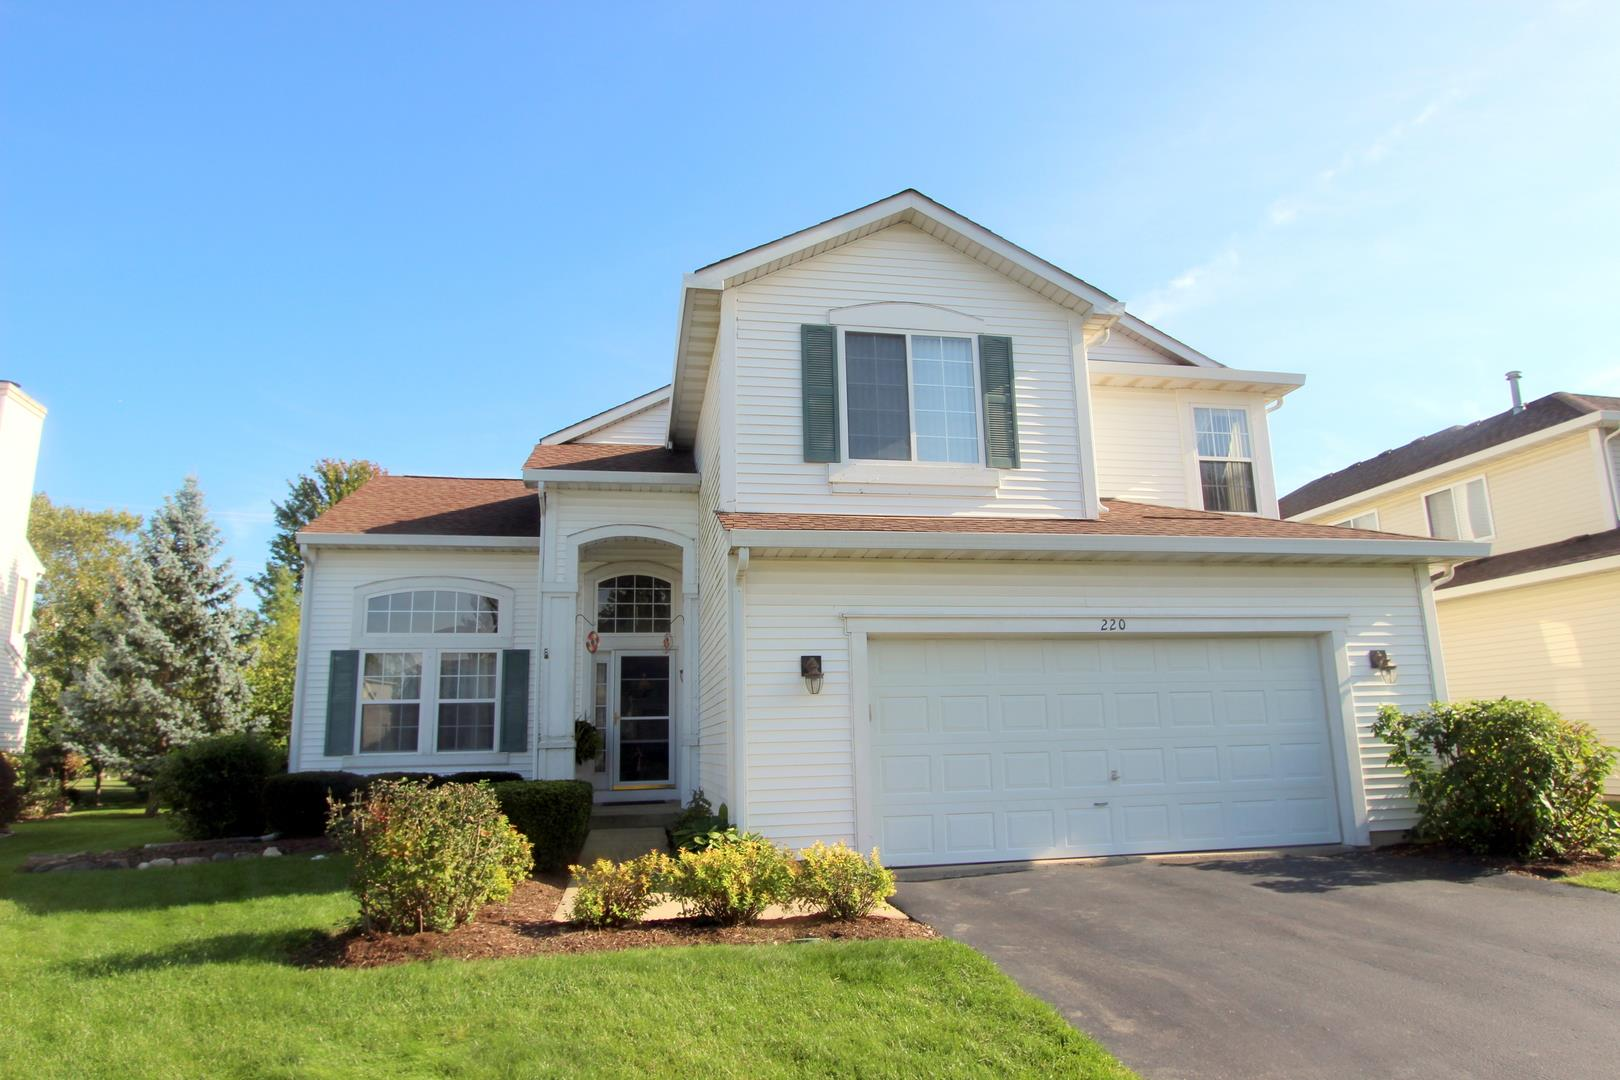 220 Wright Drive, Lake in the Hills, IL 60156 - #: 10636853